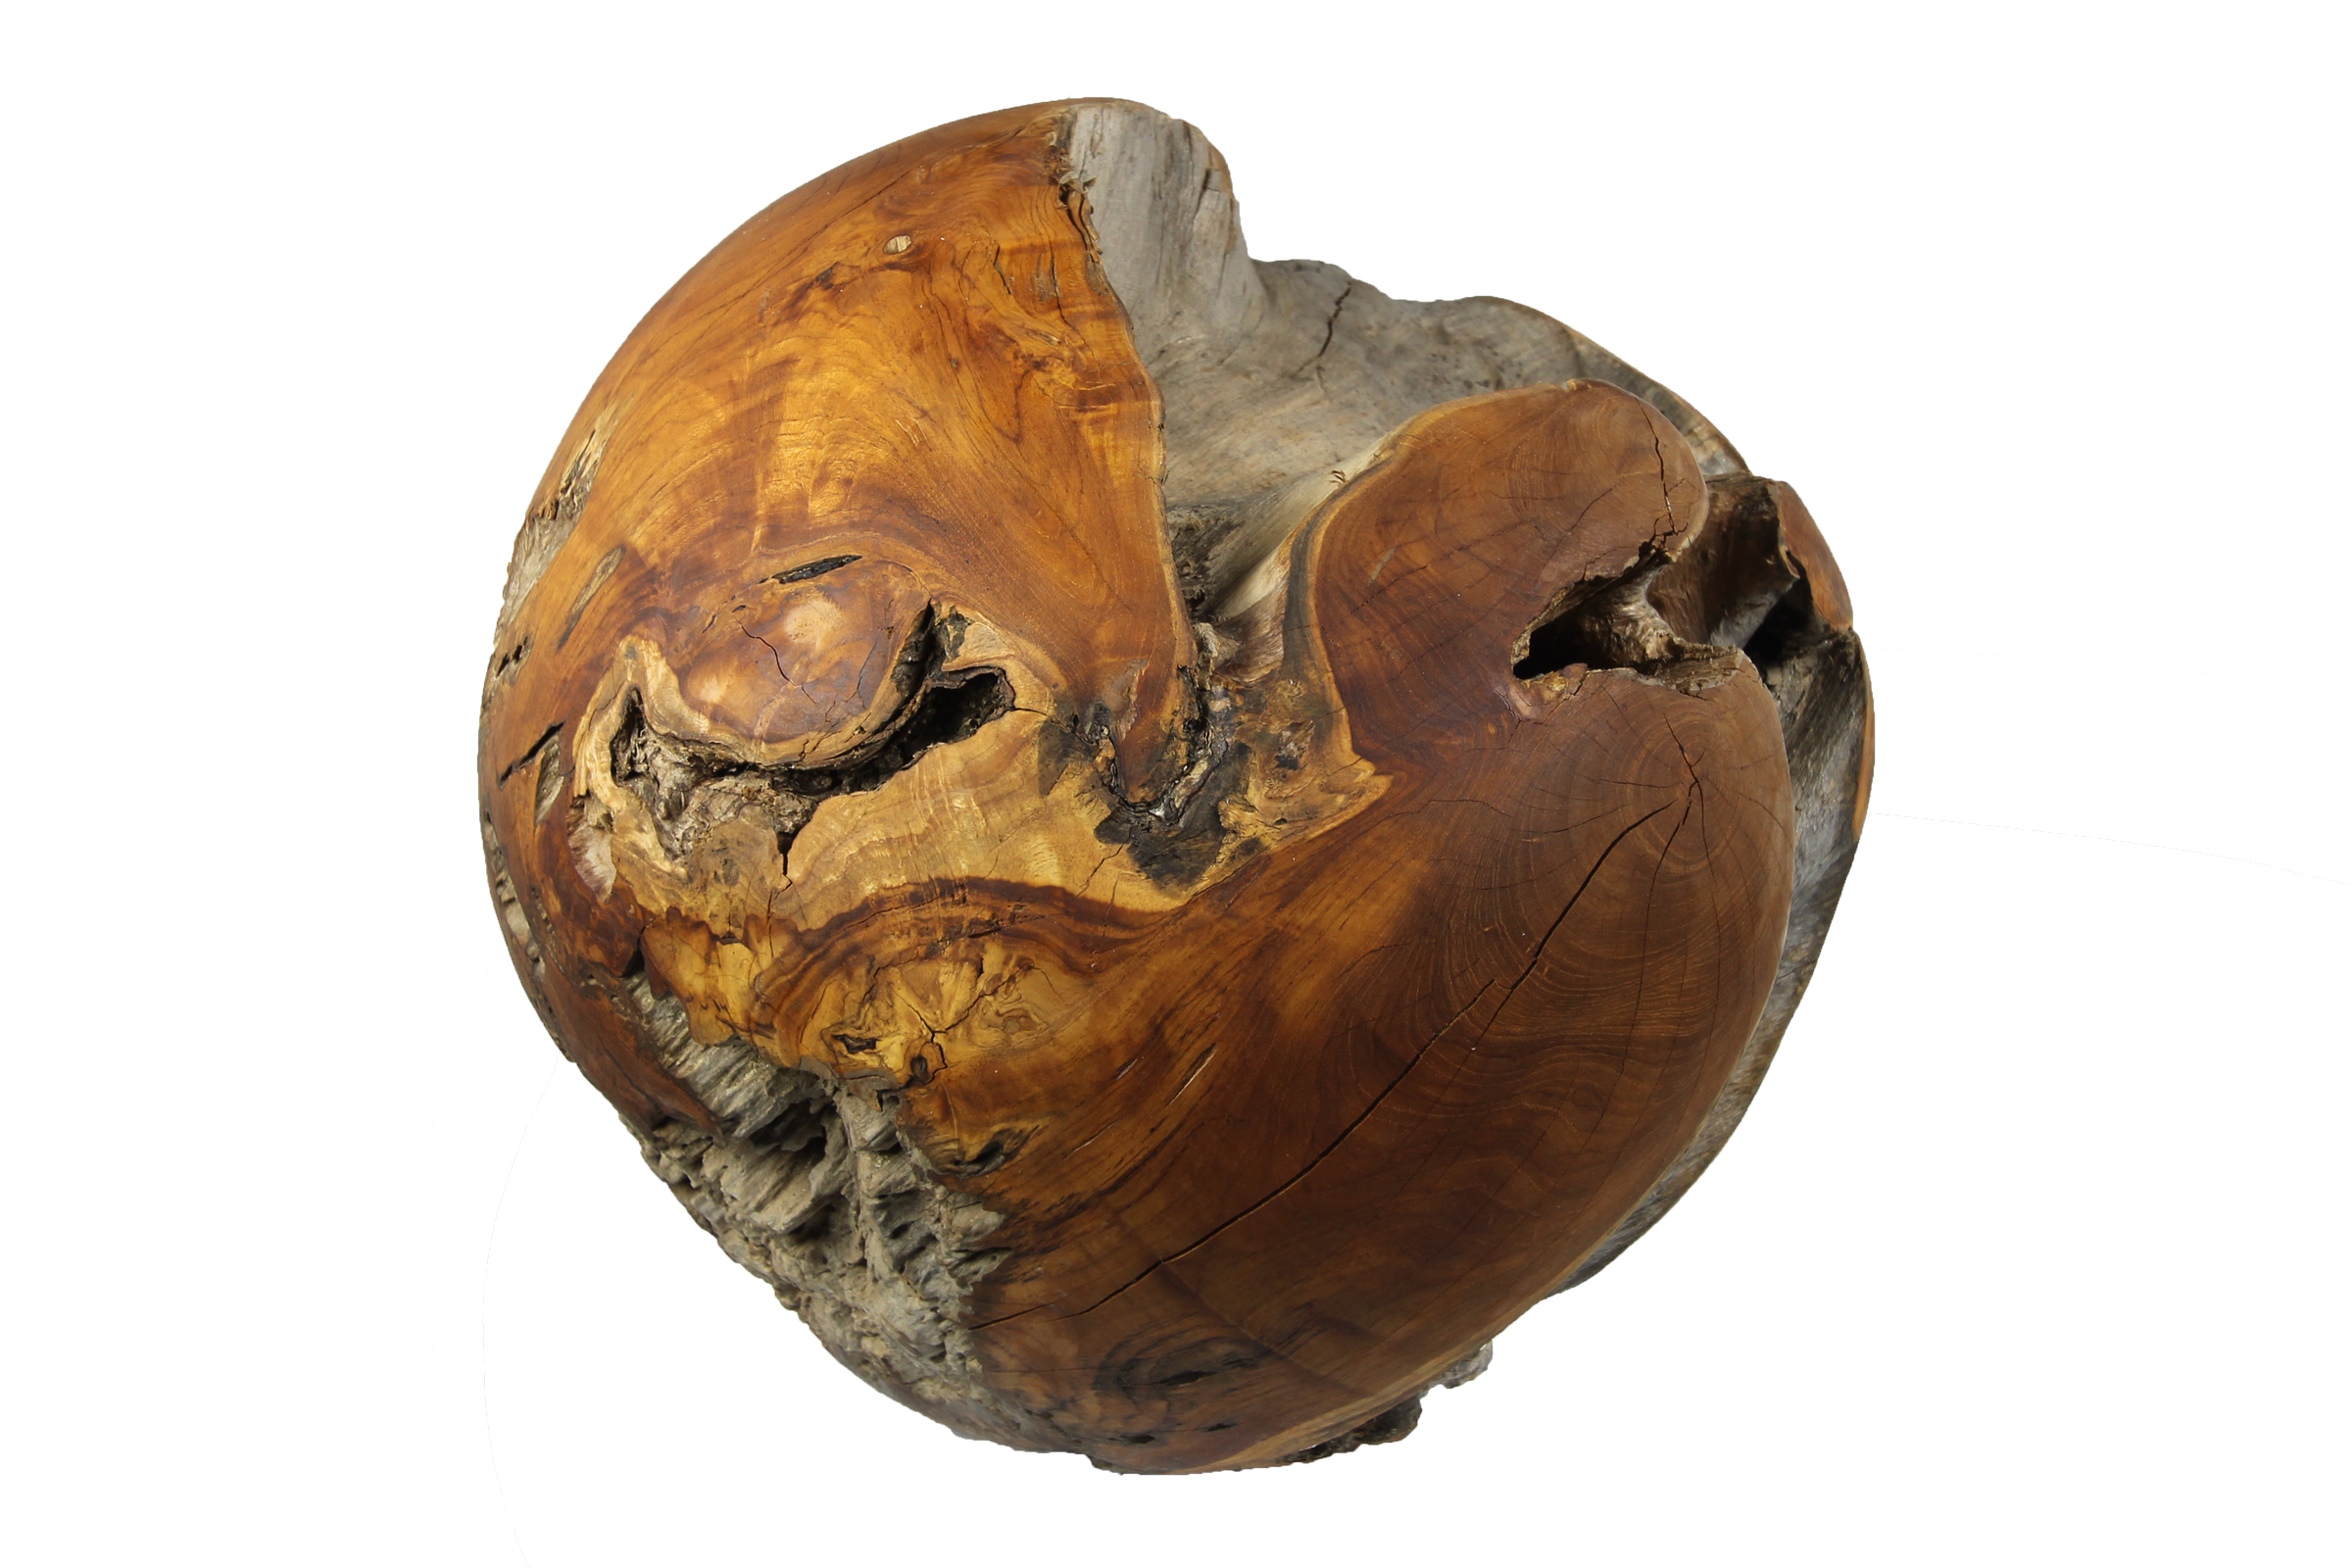 Wooden Sphere Gallery Cafe Holiday Gift Guide Holiday Gifts